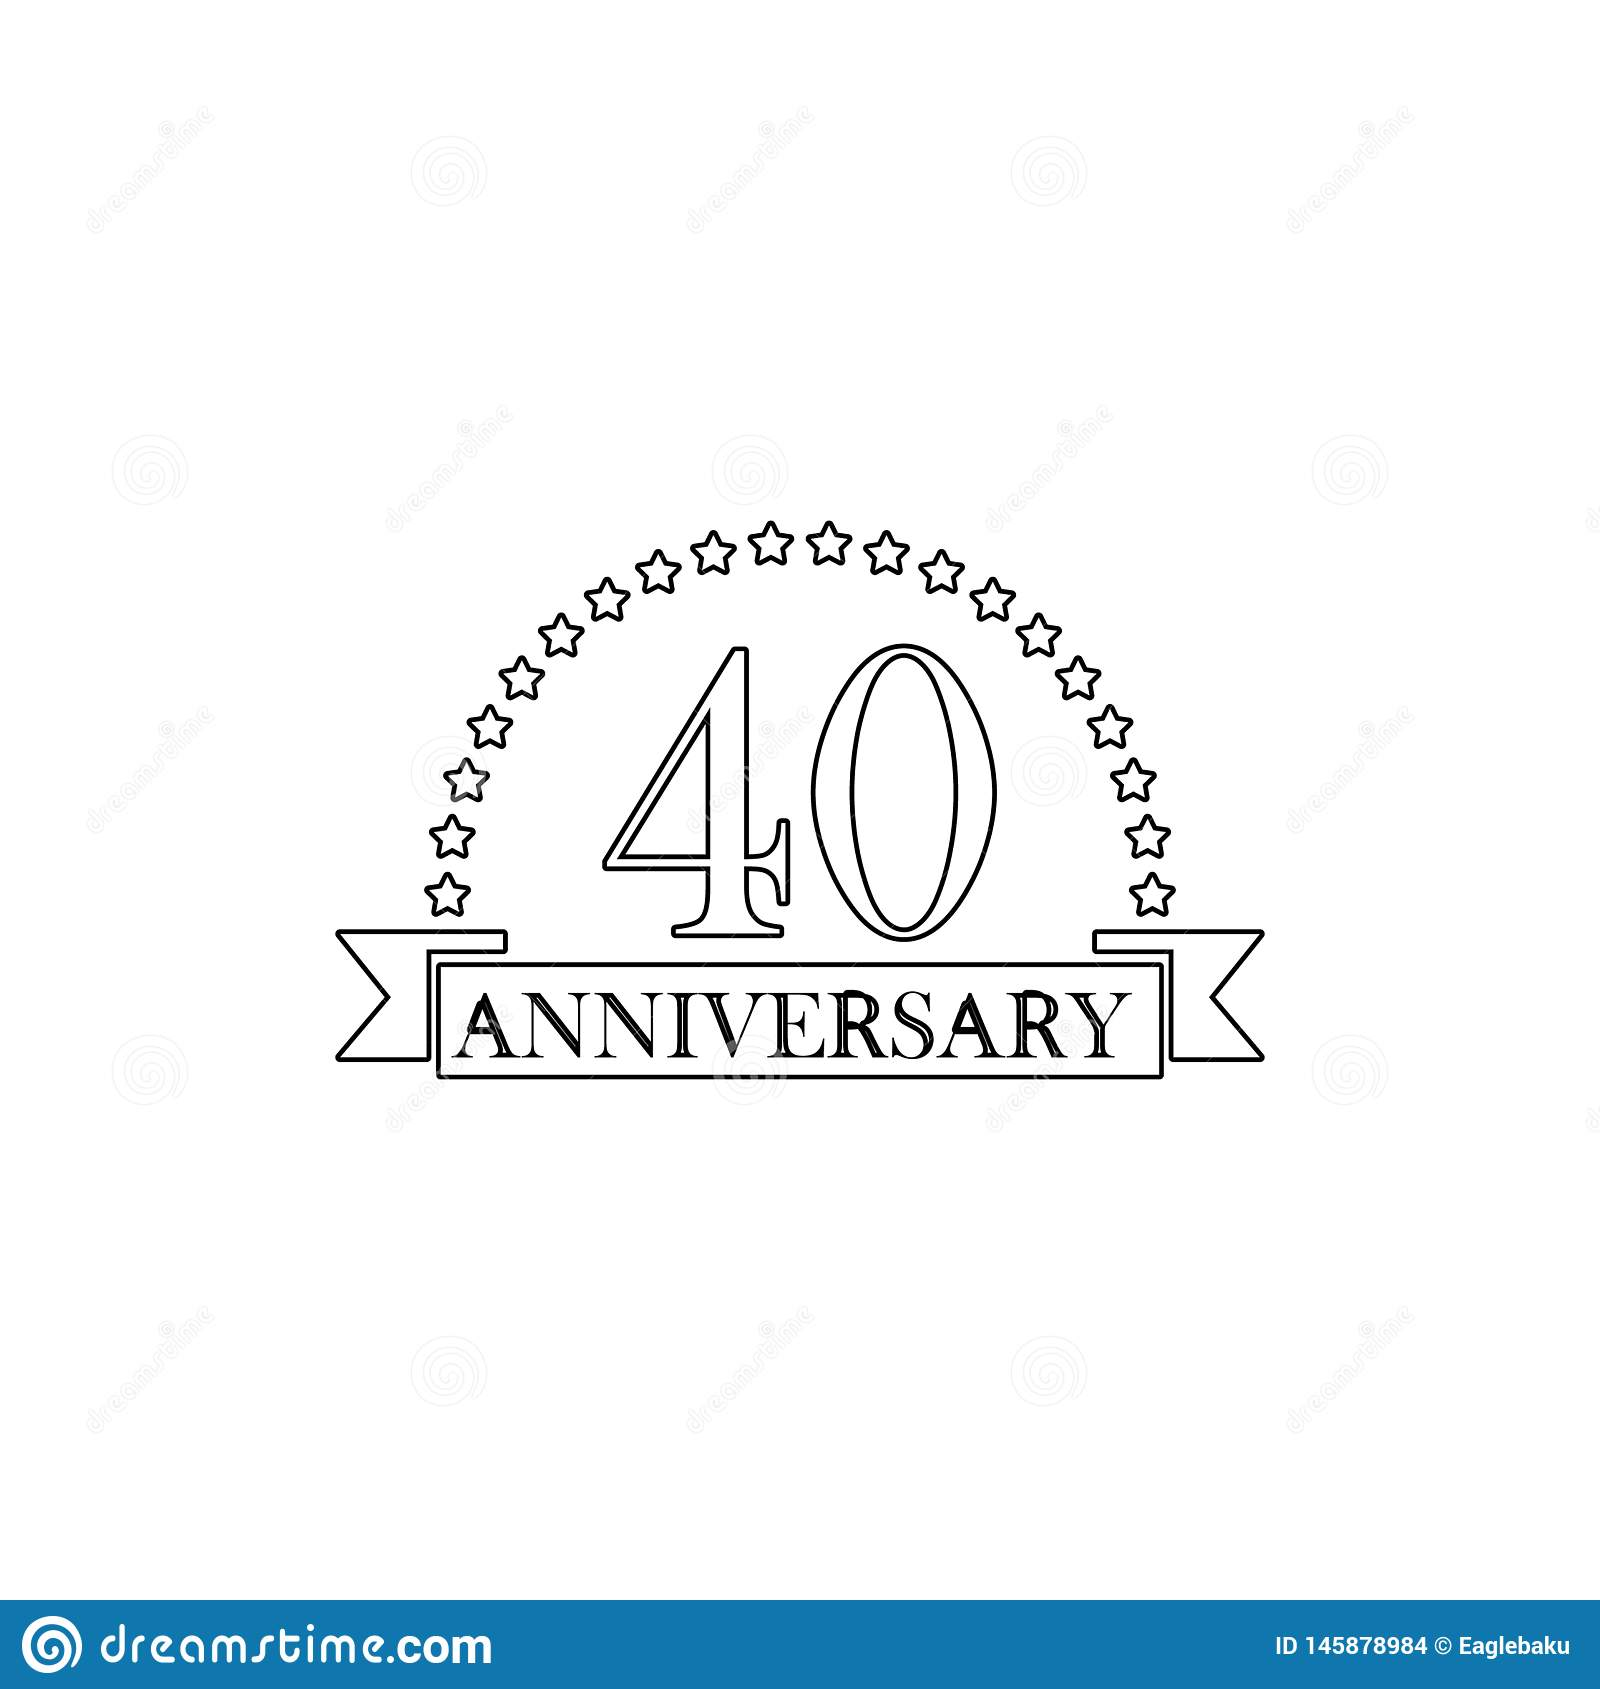 40 anniversary sign. Element of anniversary illustration. Premium quality graphic design icon. Signs and symbols collection icon